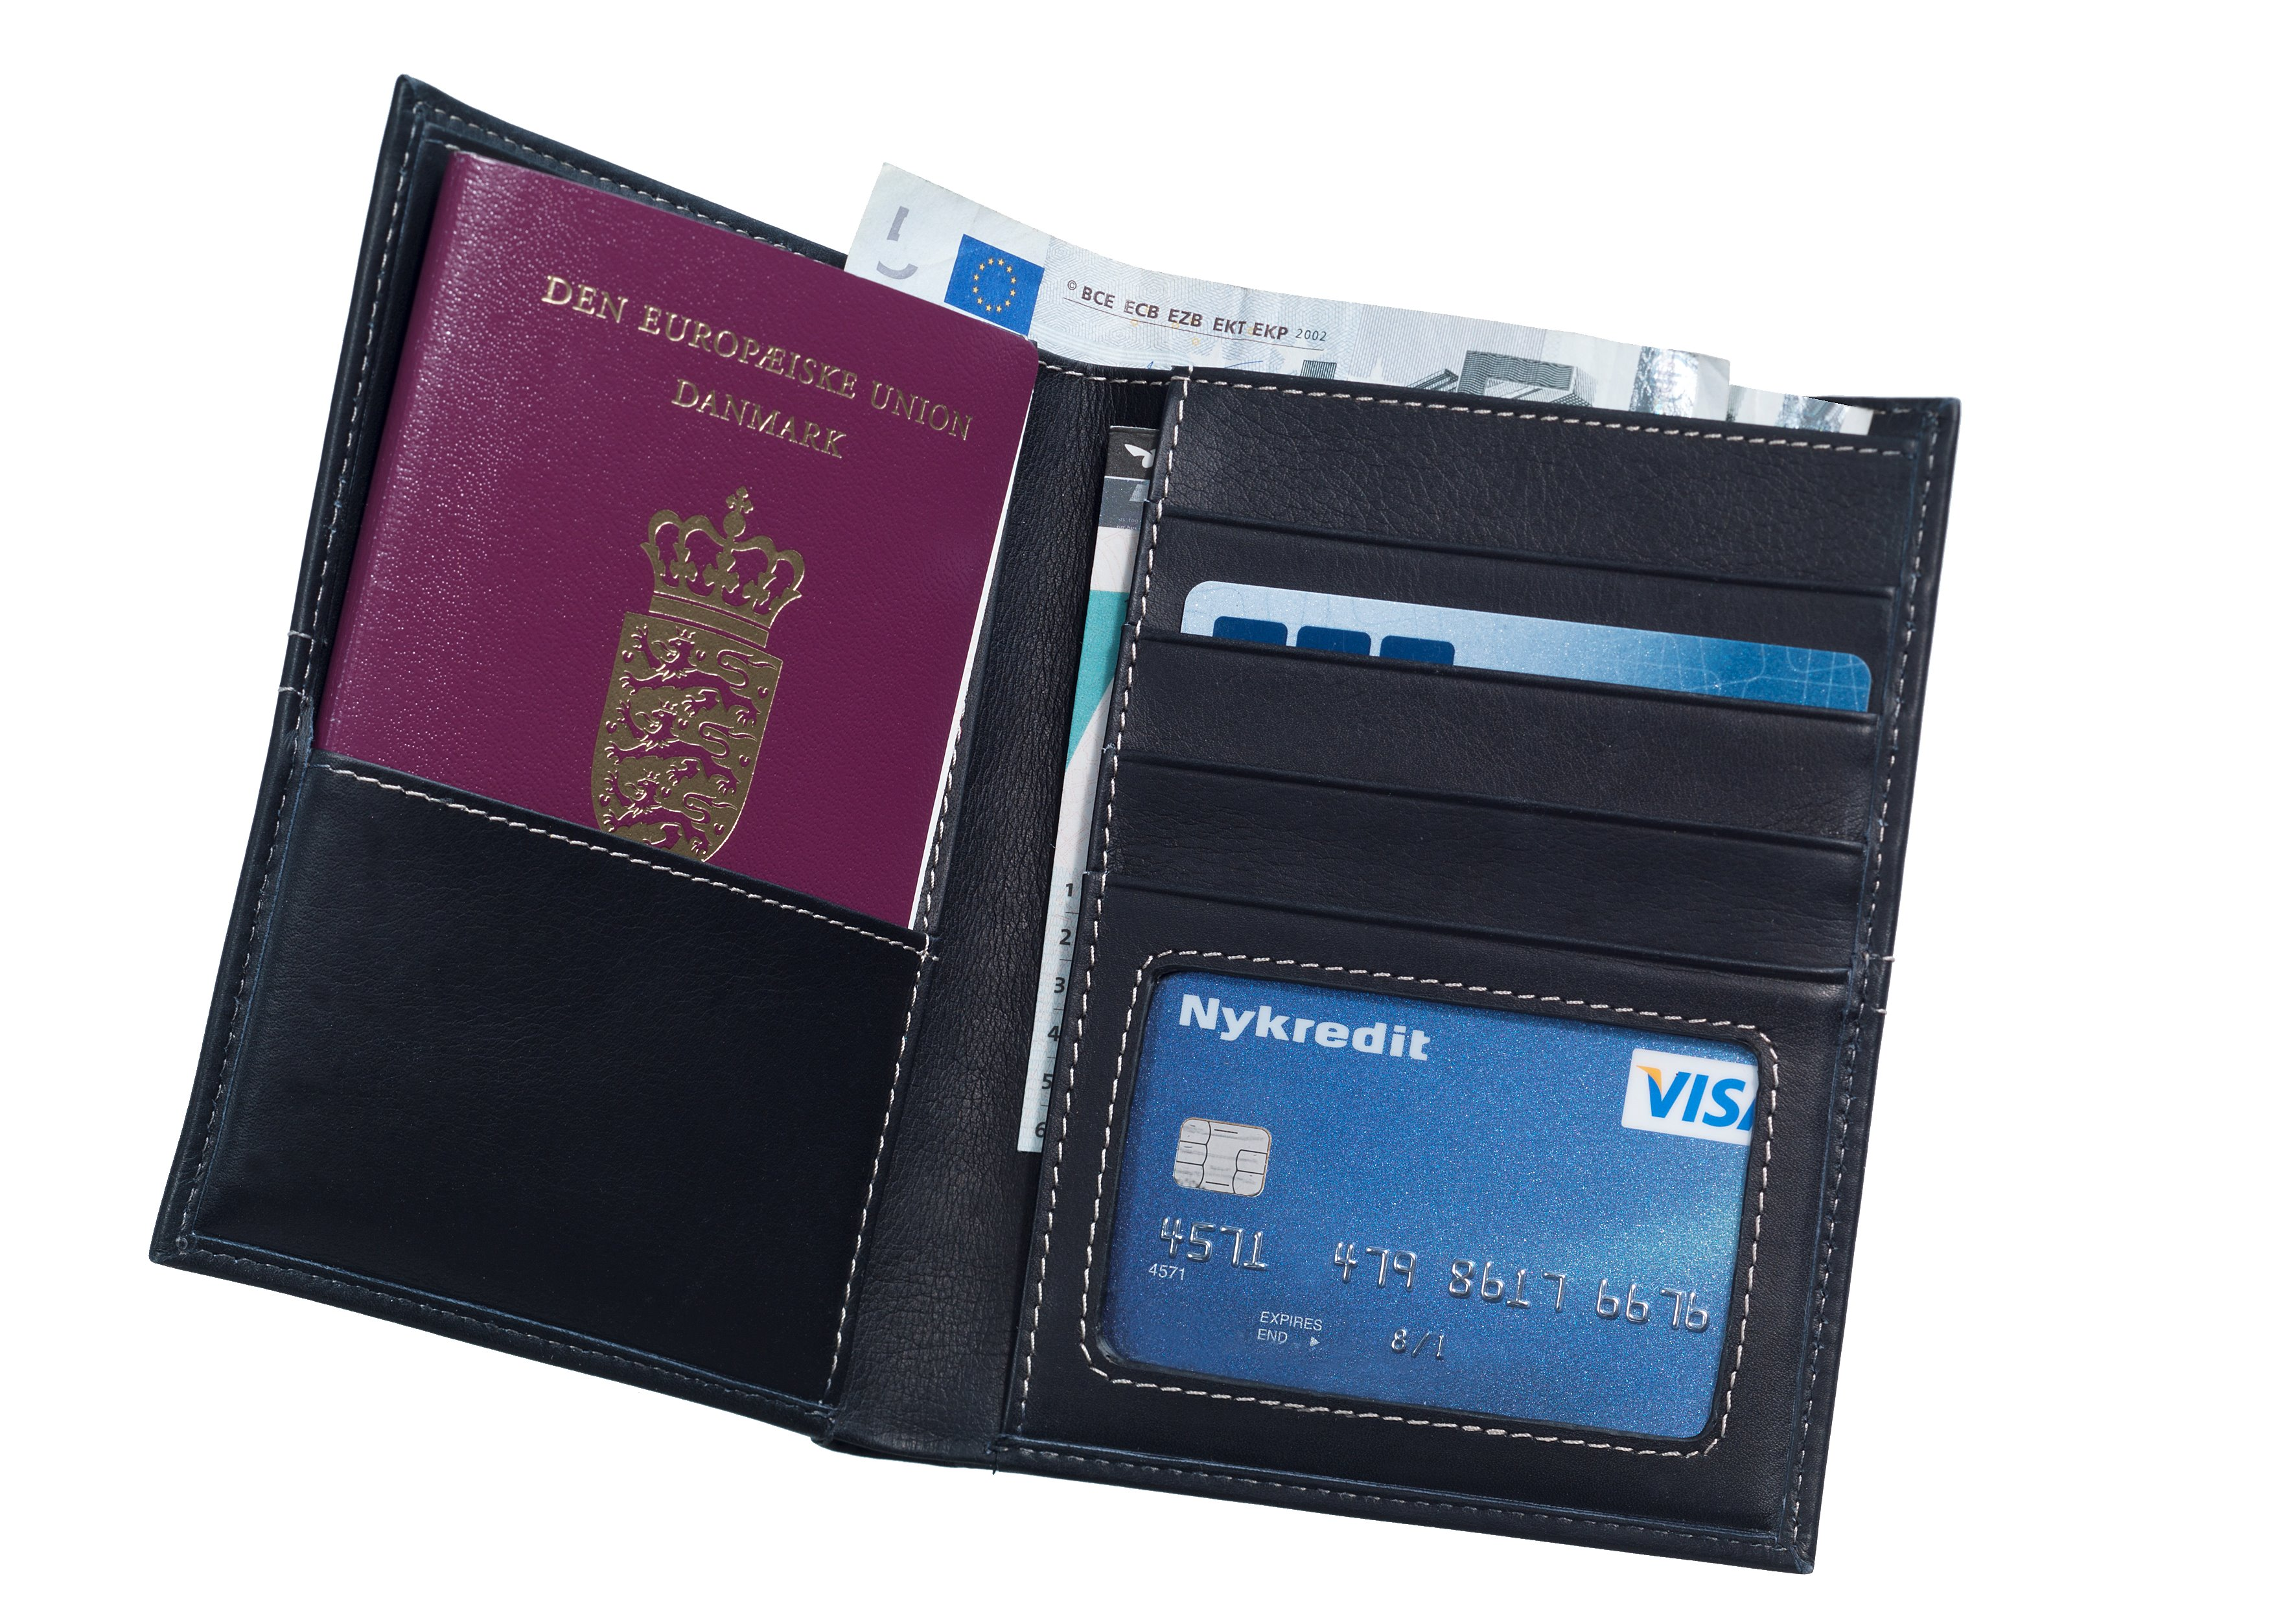 Passport holder in soft, black leather with white stitching. Contains a pocket for your passport and 4 pockets for credit cards and business cards. It also has 3 pockets for cash, receipts etc.